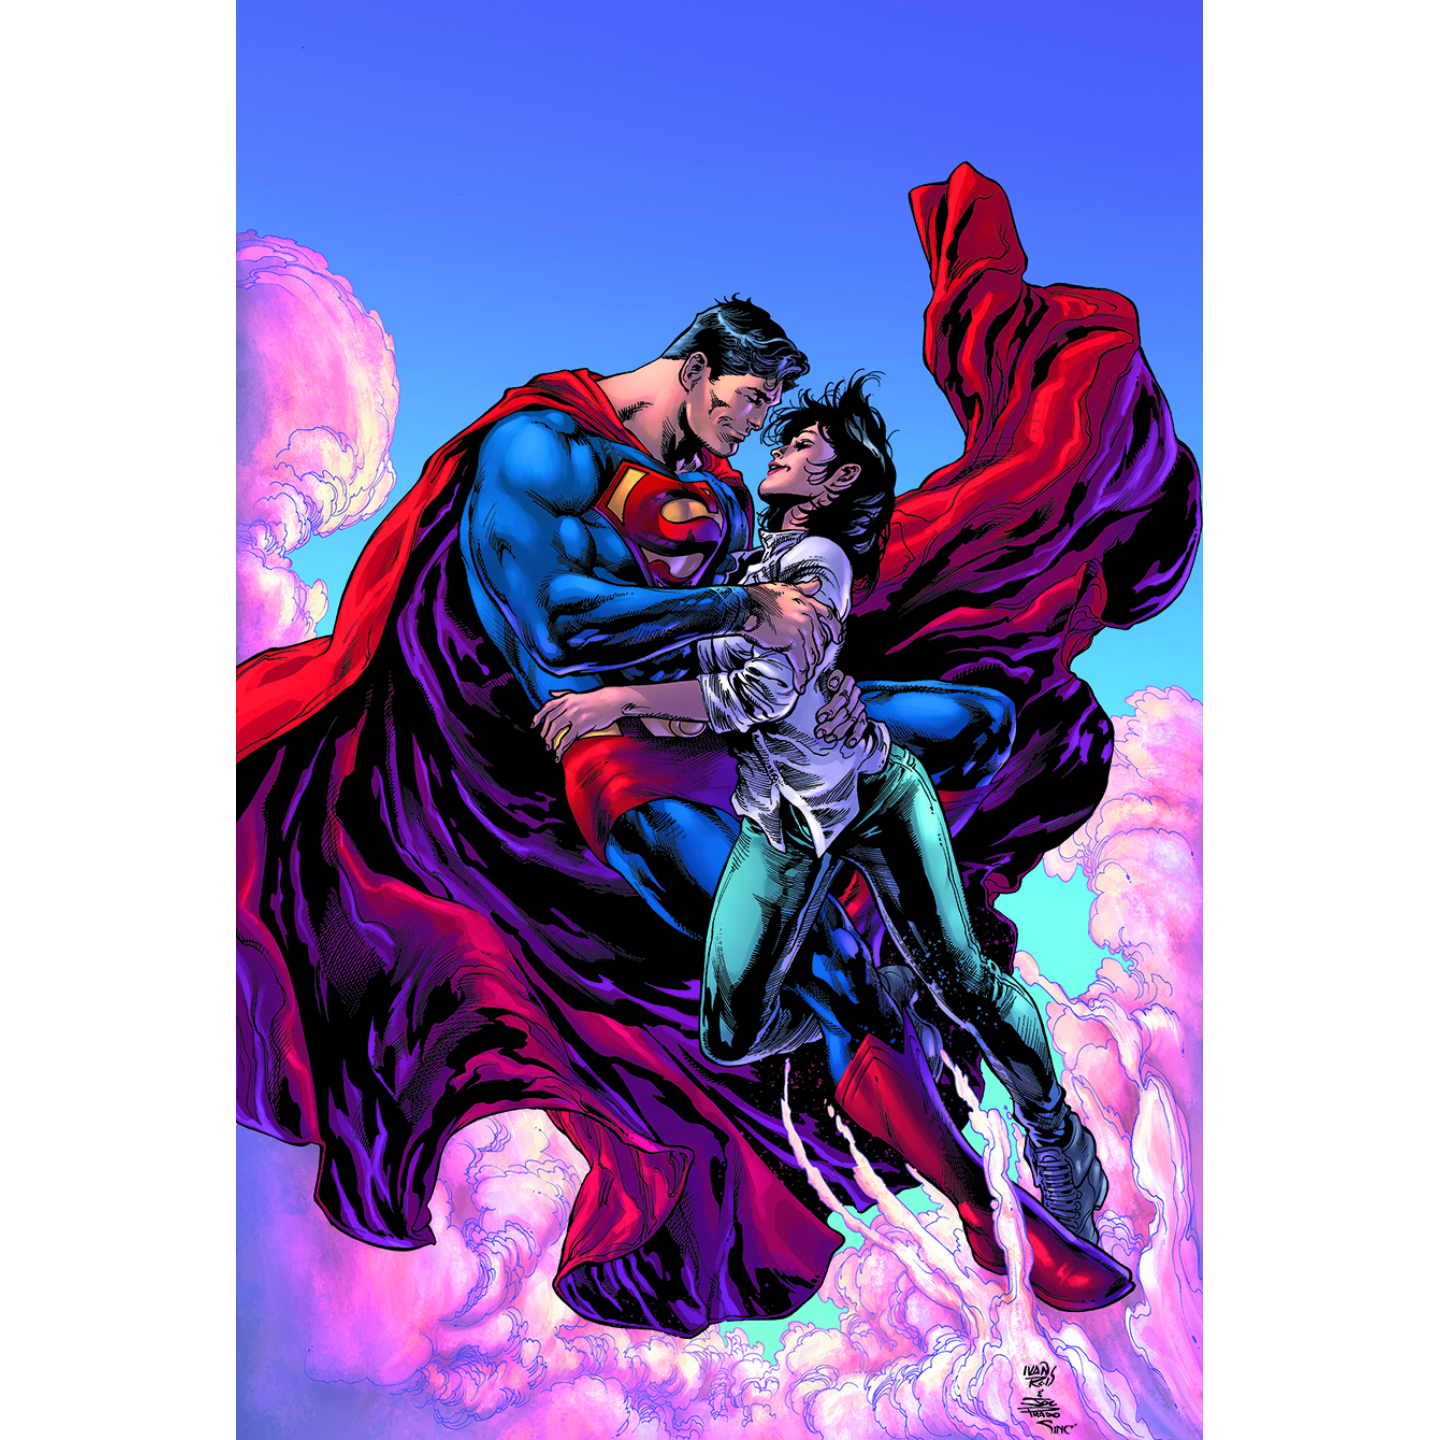 SUPERMAN #28 CVR A IVAN REIS & JOE PRADO